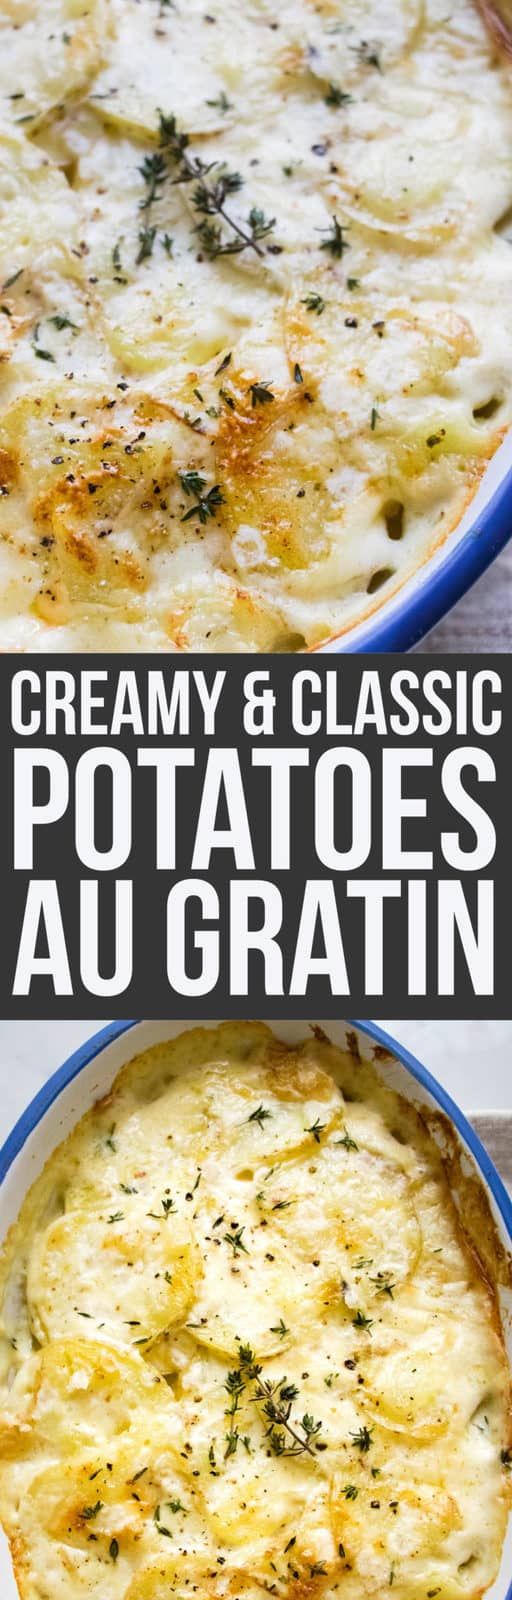 Potatoes au gratin is a simple potato side dish that takes only a few ingredients to make and is completely show stopping. Infused cream makes this special. #SideDish #potatoes #vegetarian #Holidays #HolidaySides